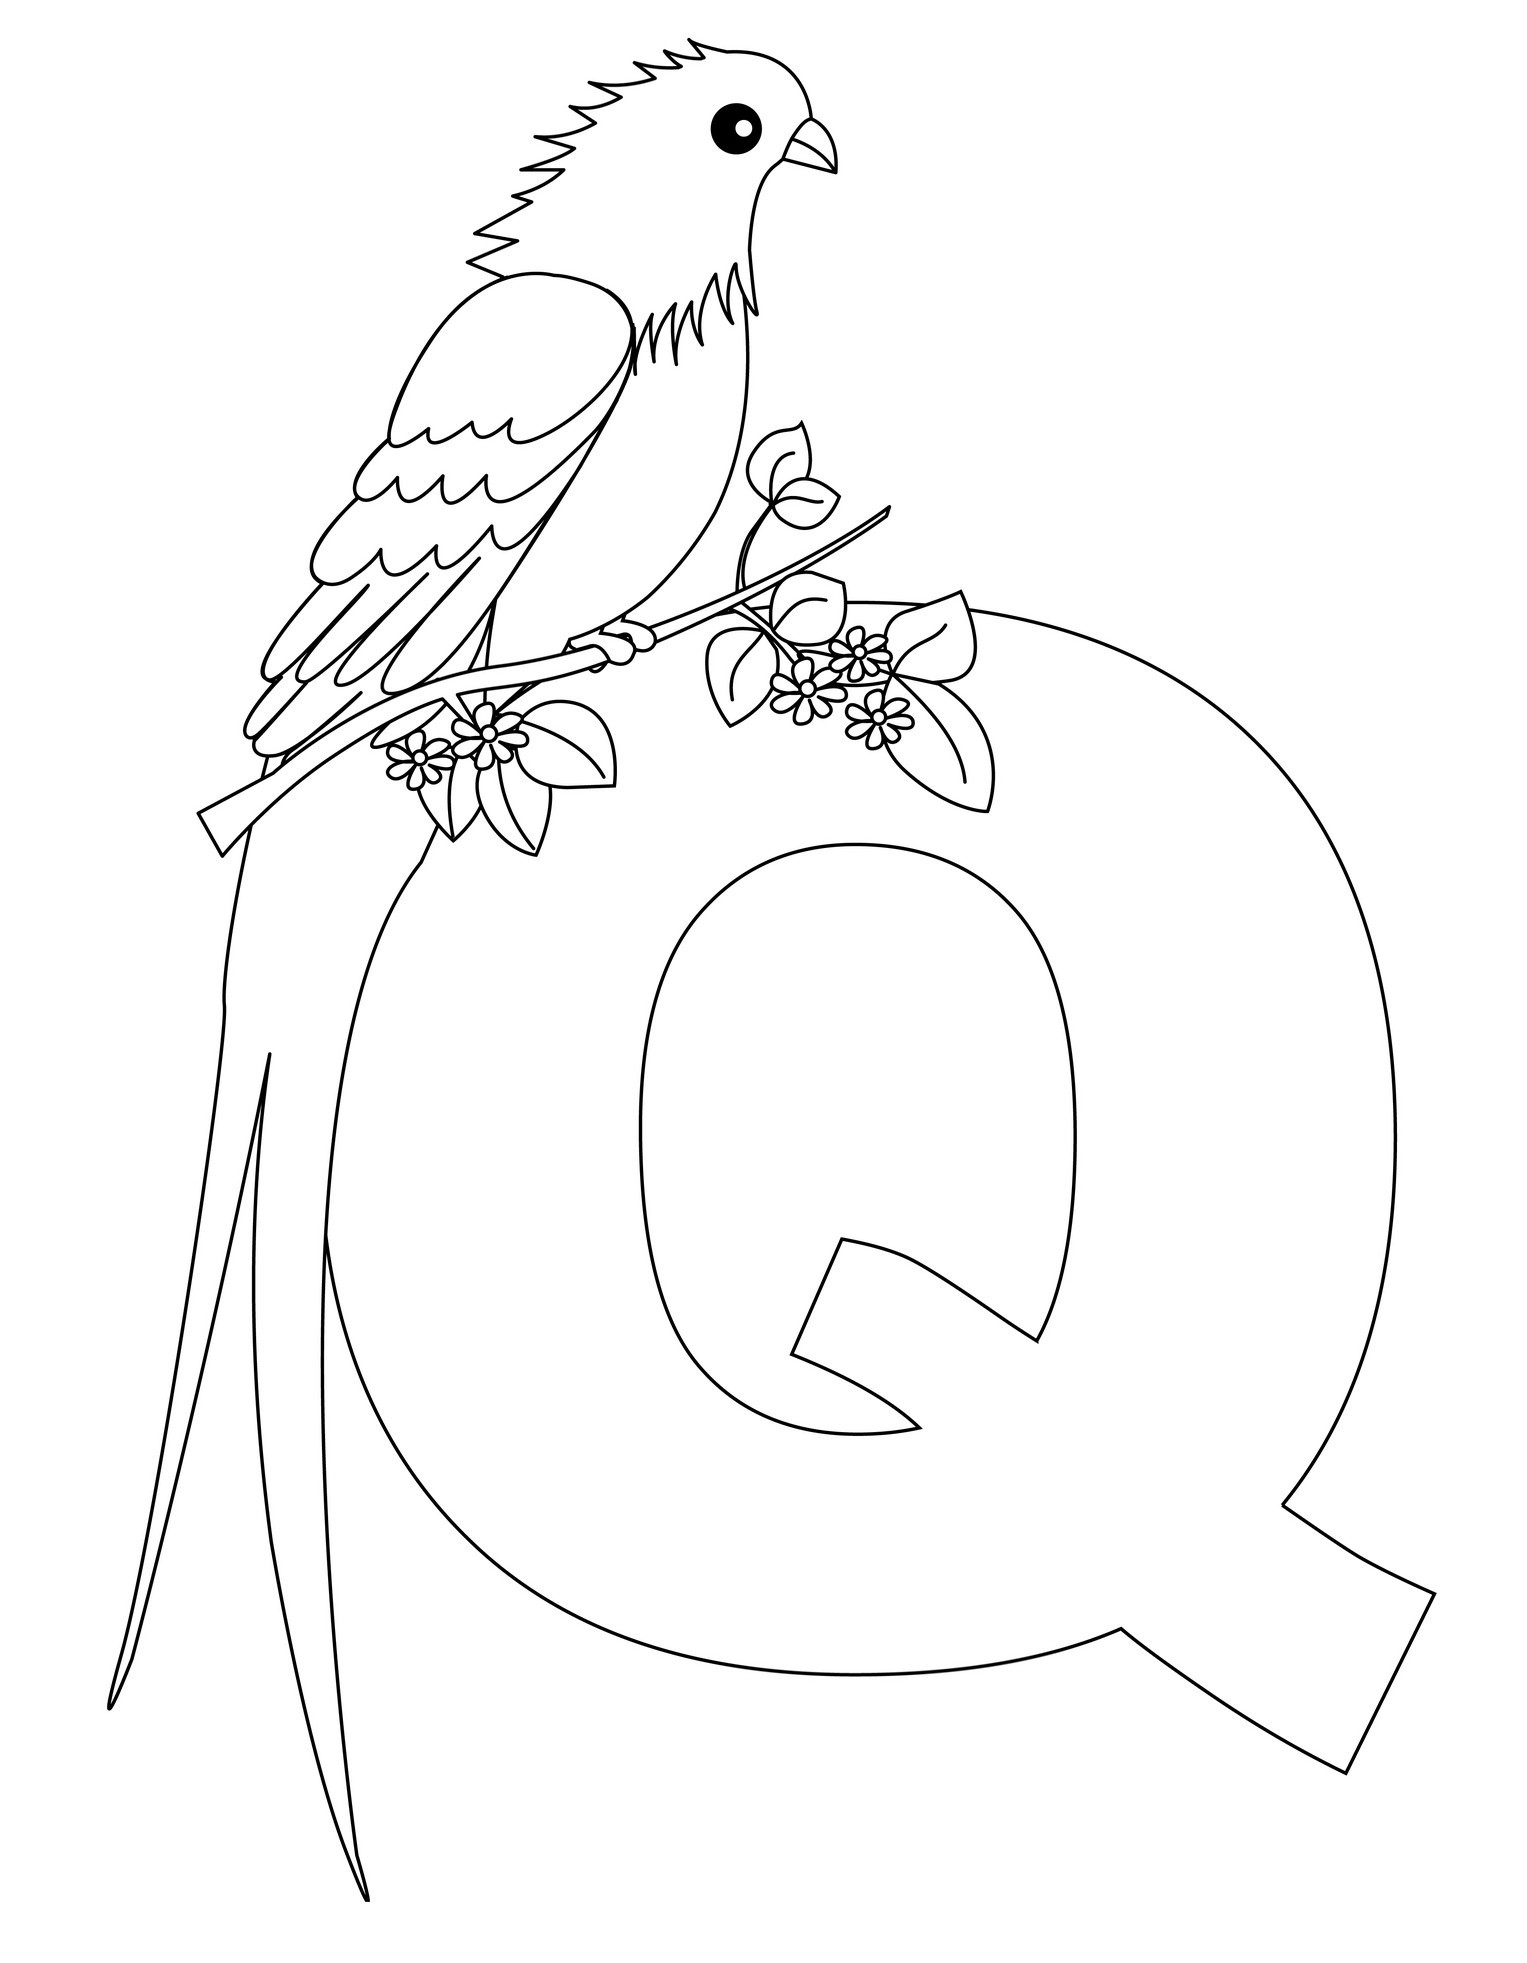 coloring page q letter q perfect handwriting alphabet colouring page coloring q page